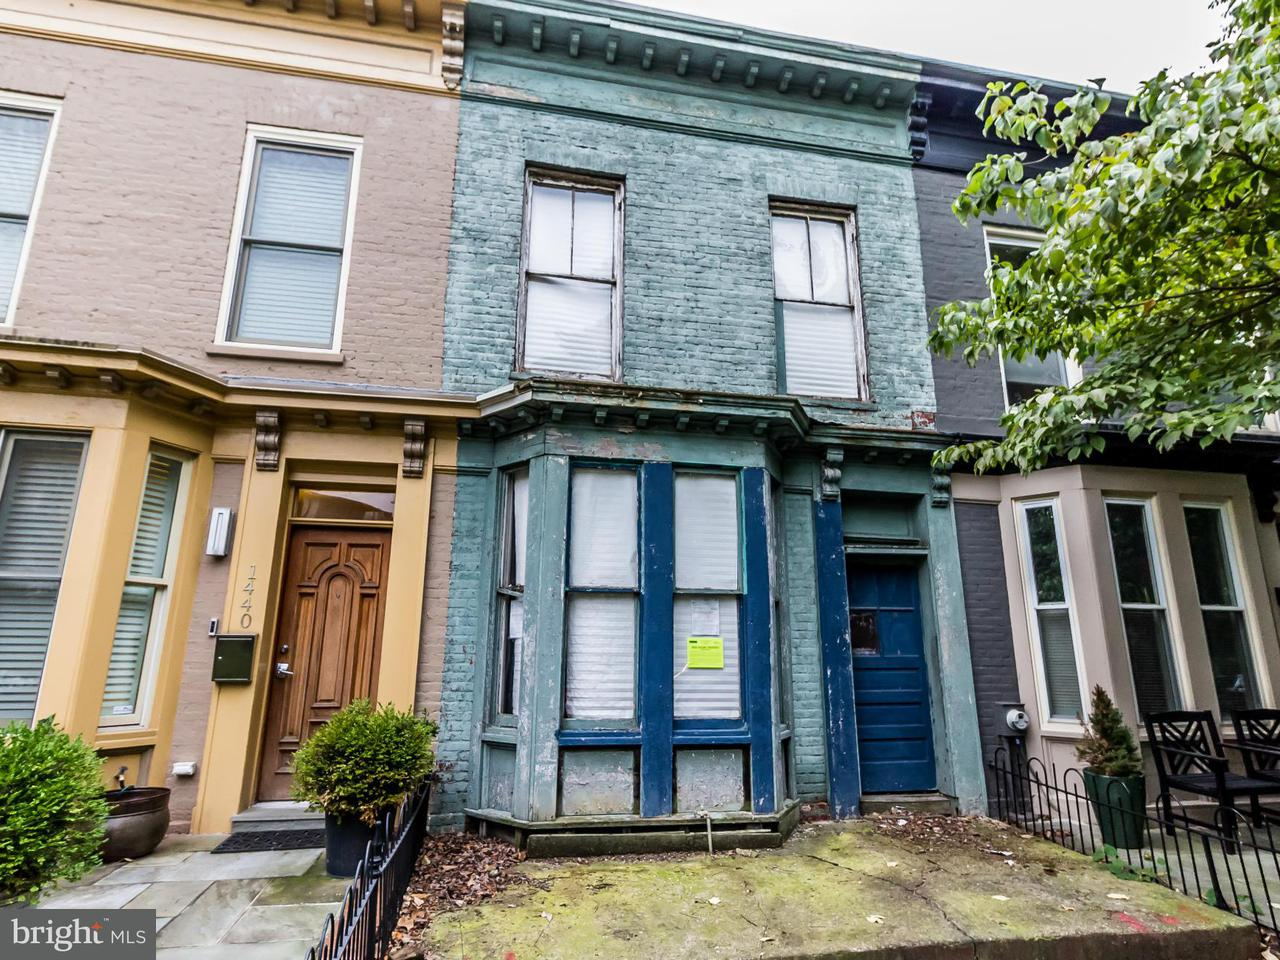 Townhouse for Sale at 1442 T St Nw 1442 T St Nw Washington, District Of Columbia 20009 United States